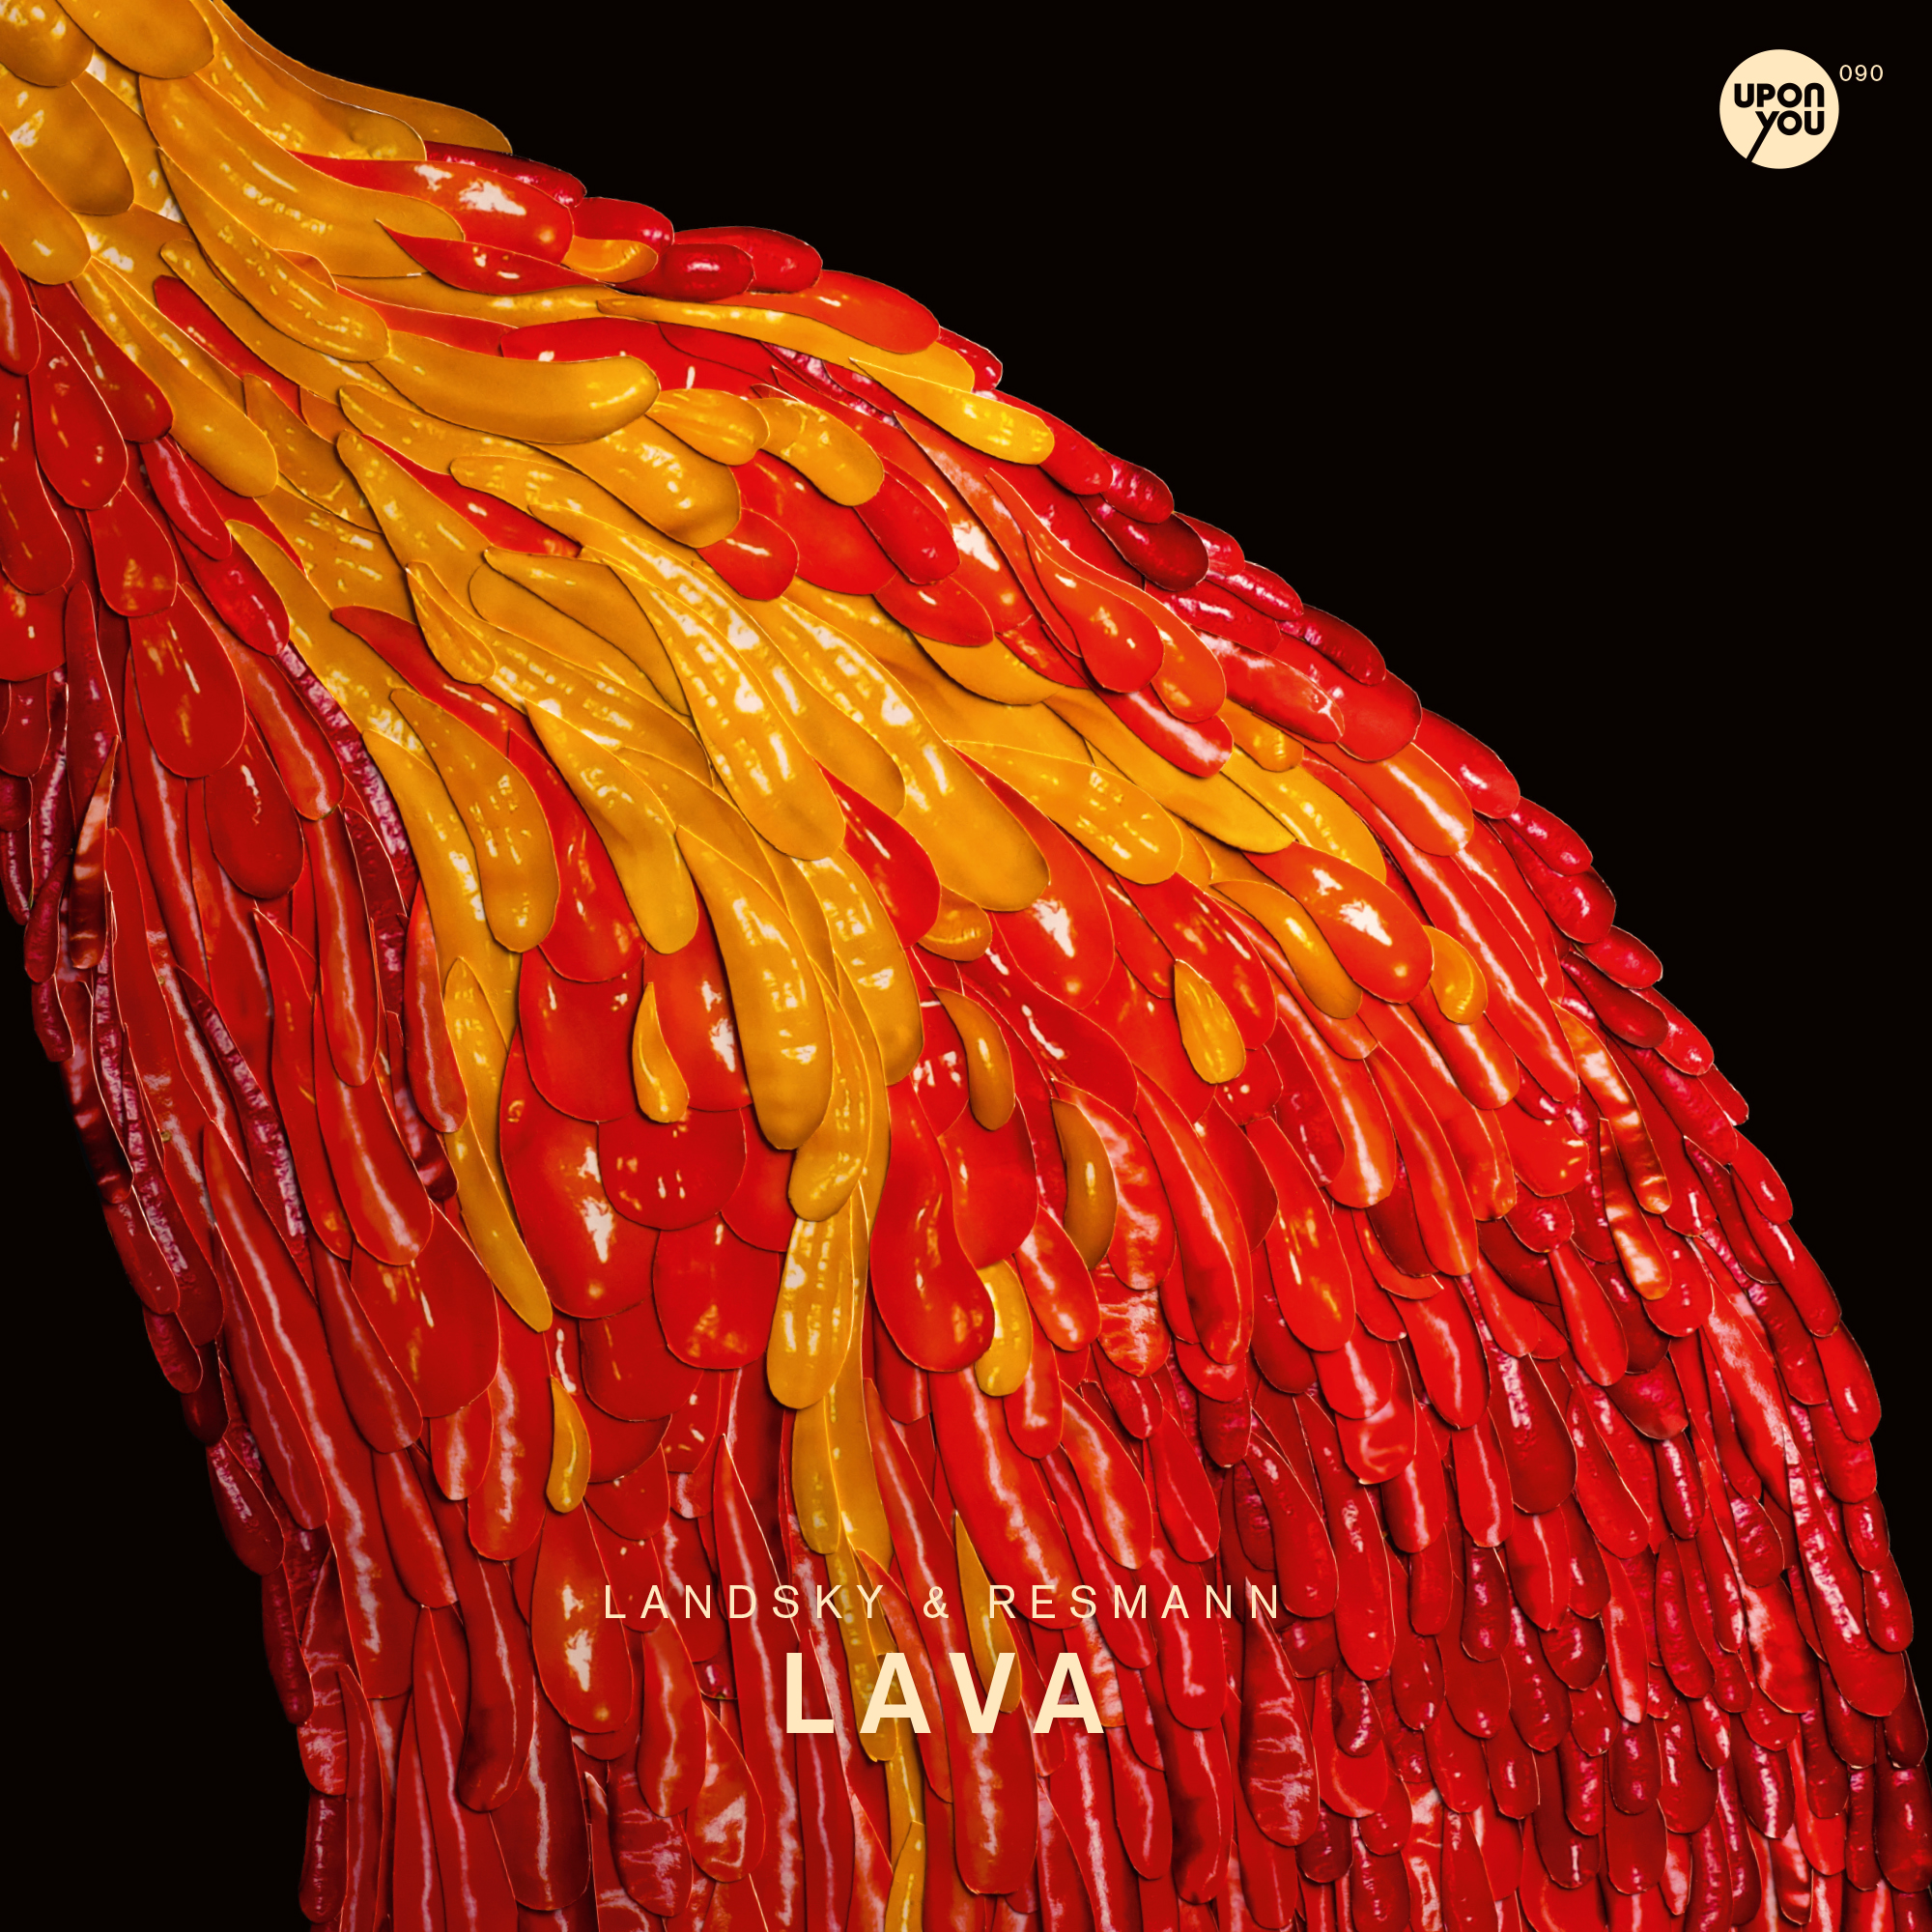 Landsky & Resmann – Lava (Upon You 090)